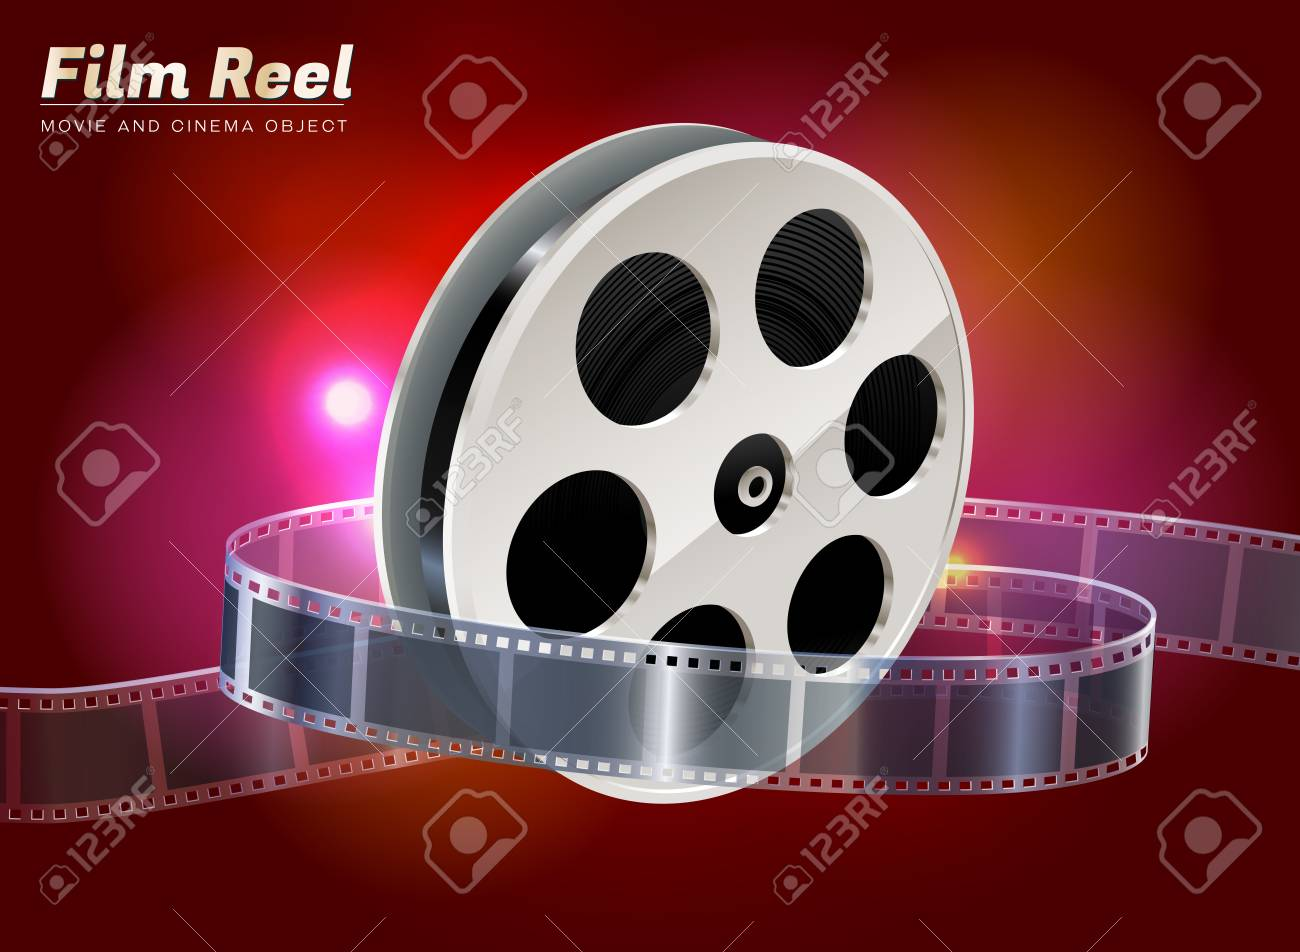 Film Reel Cinema Movie Theater Object On Bokeh Background Royalty Free Cliparts Vectors And Stock Illustration Image 75950689